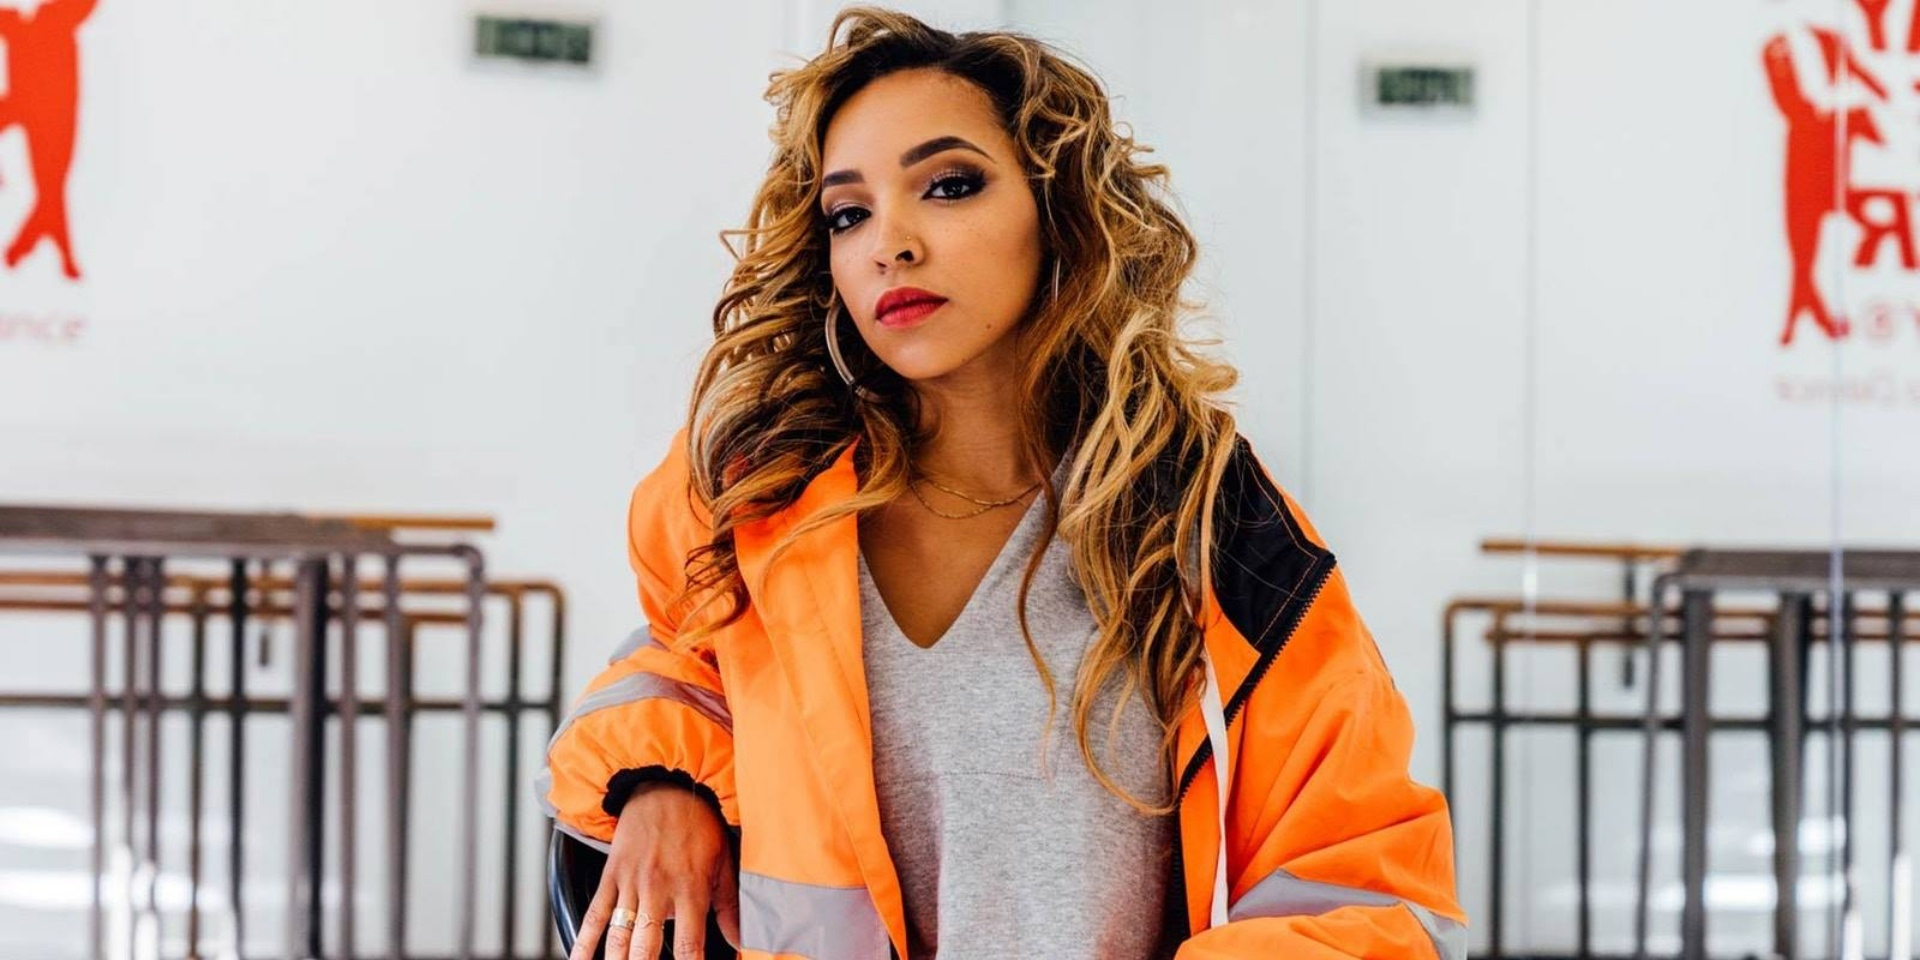 Tinashe has left RCA Records